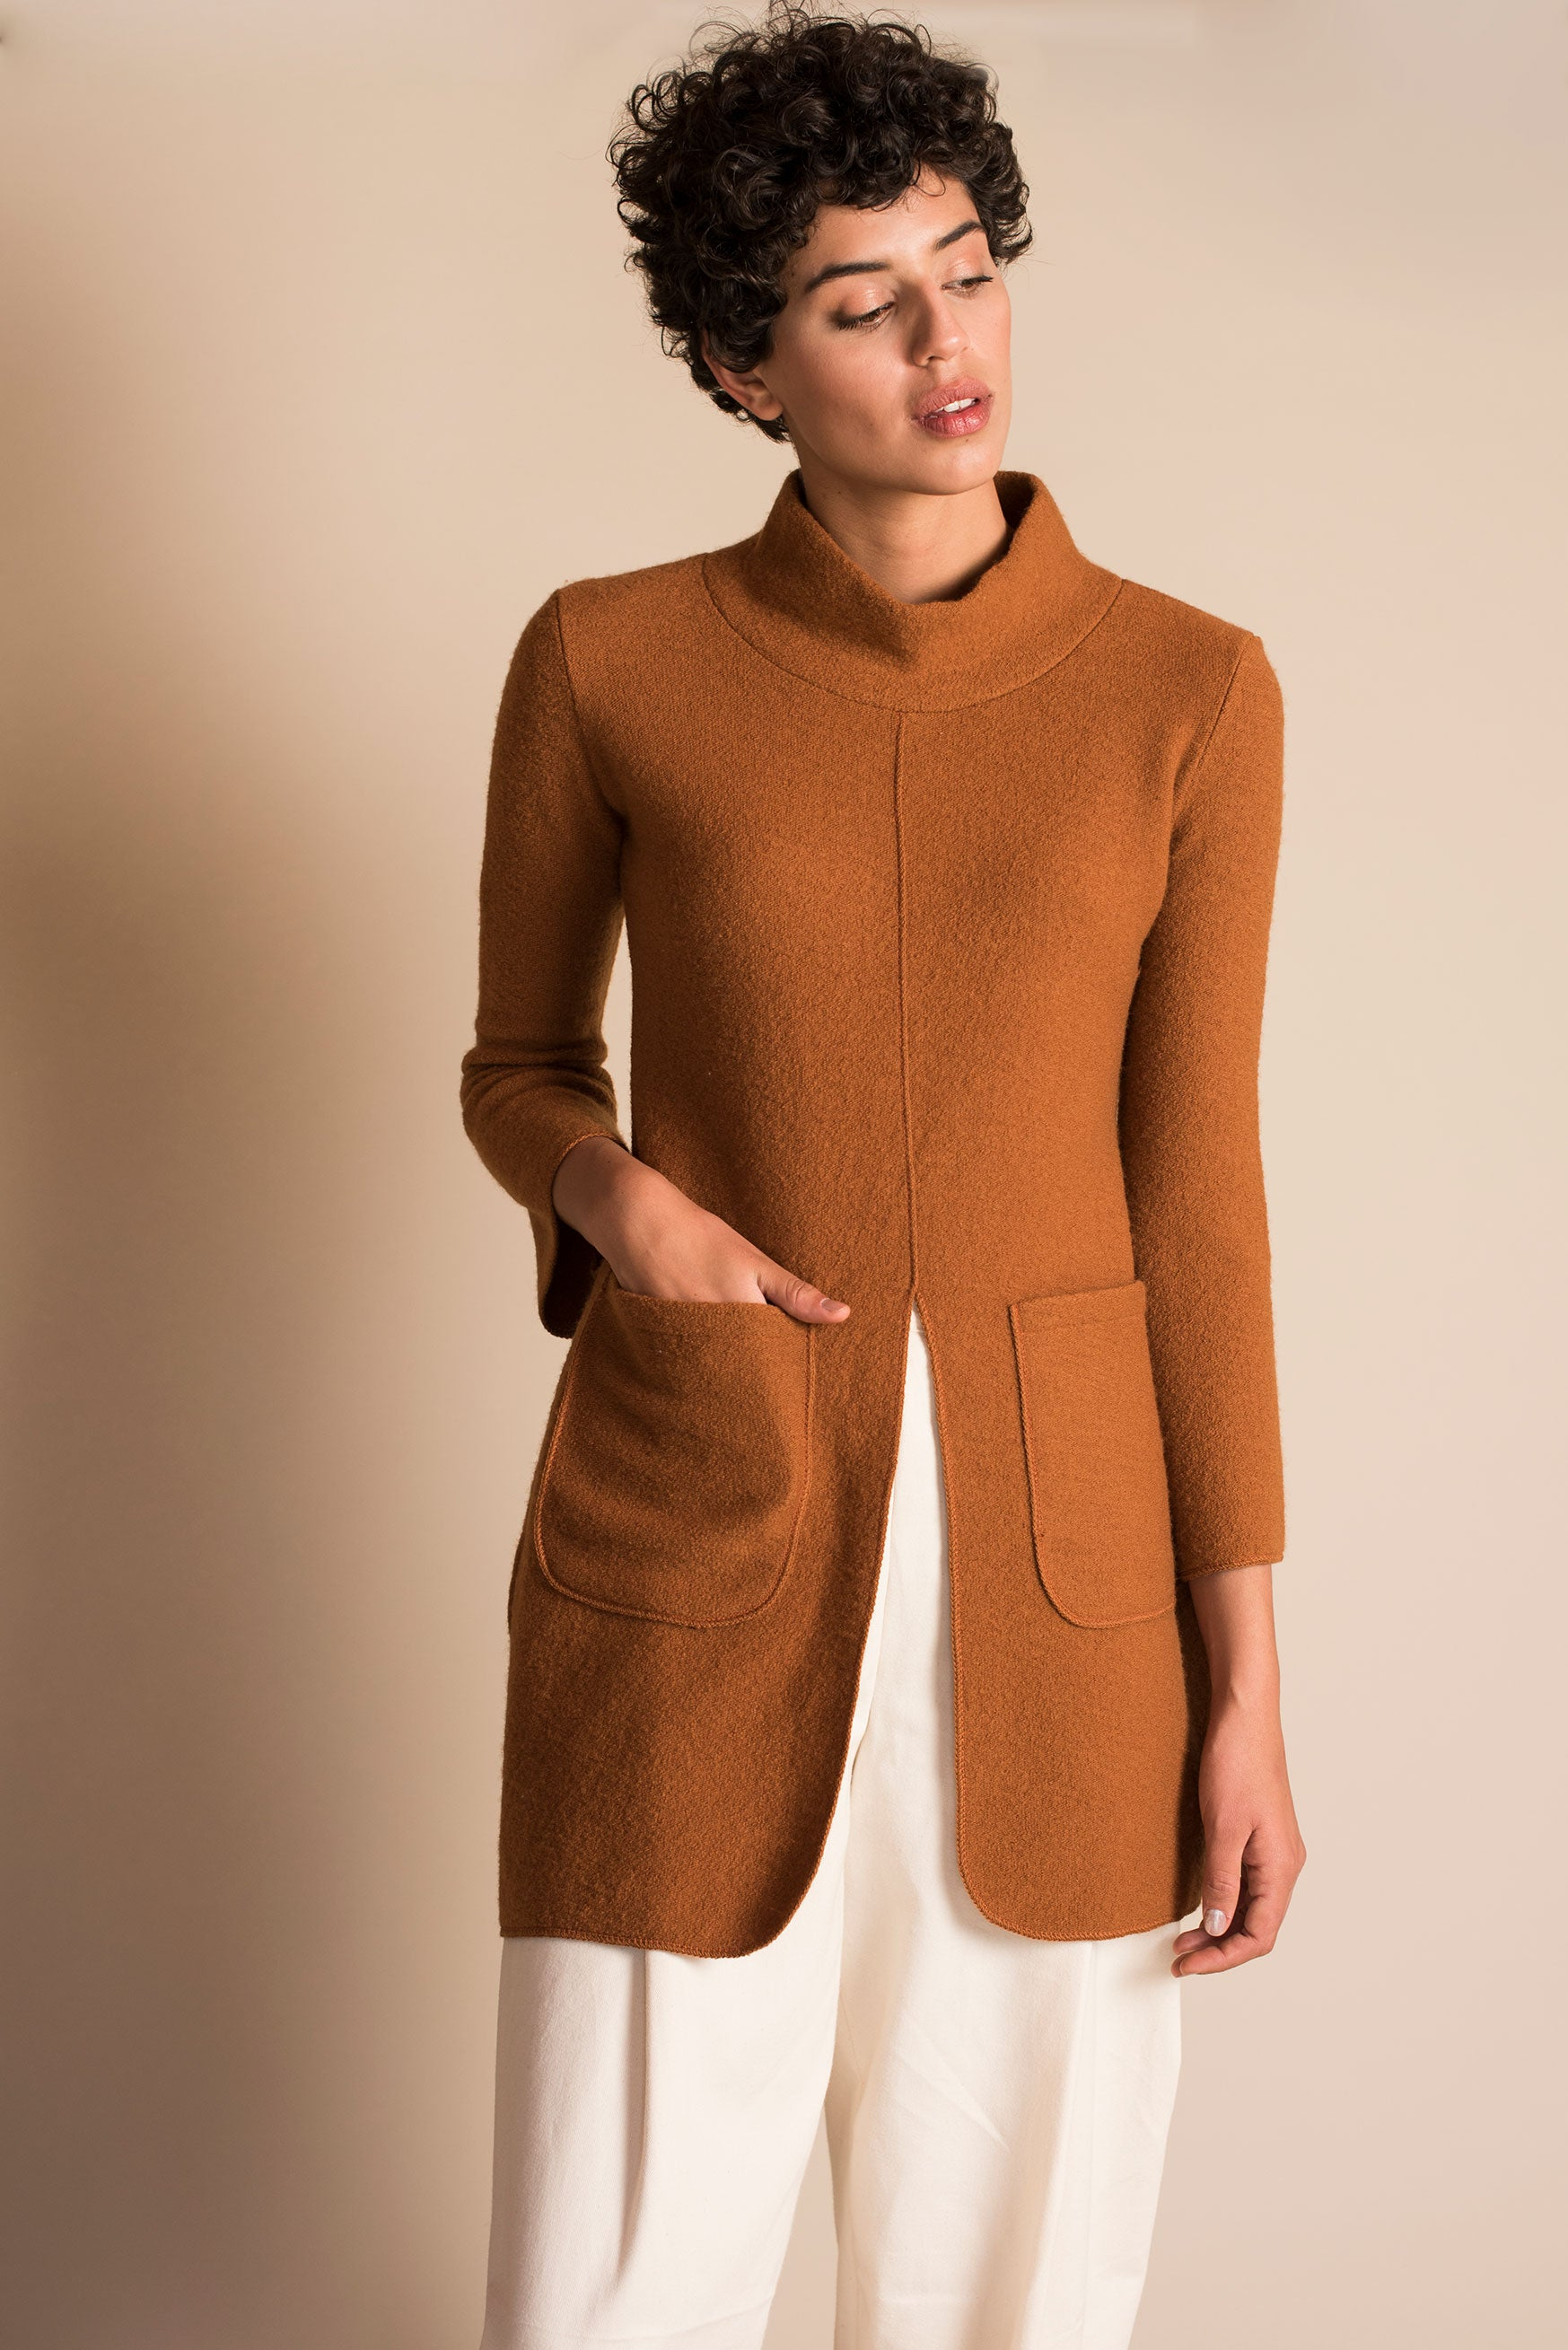 NEPTUNO Sweater Dress in Whisky